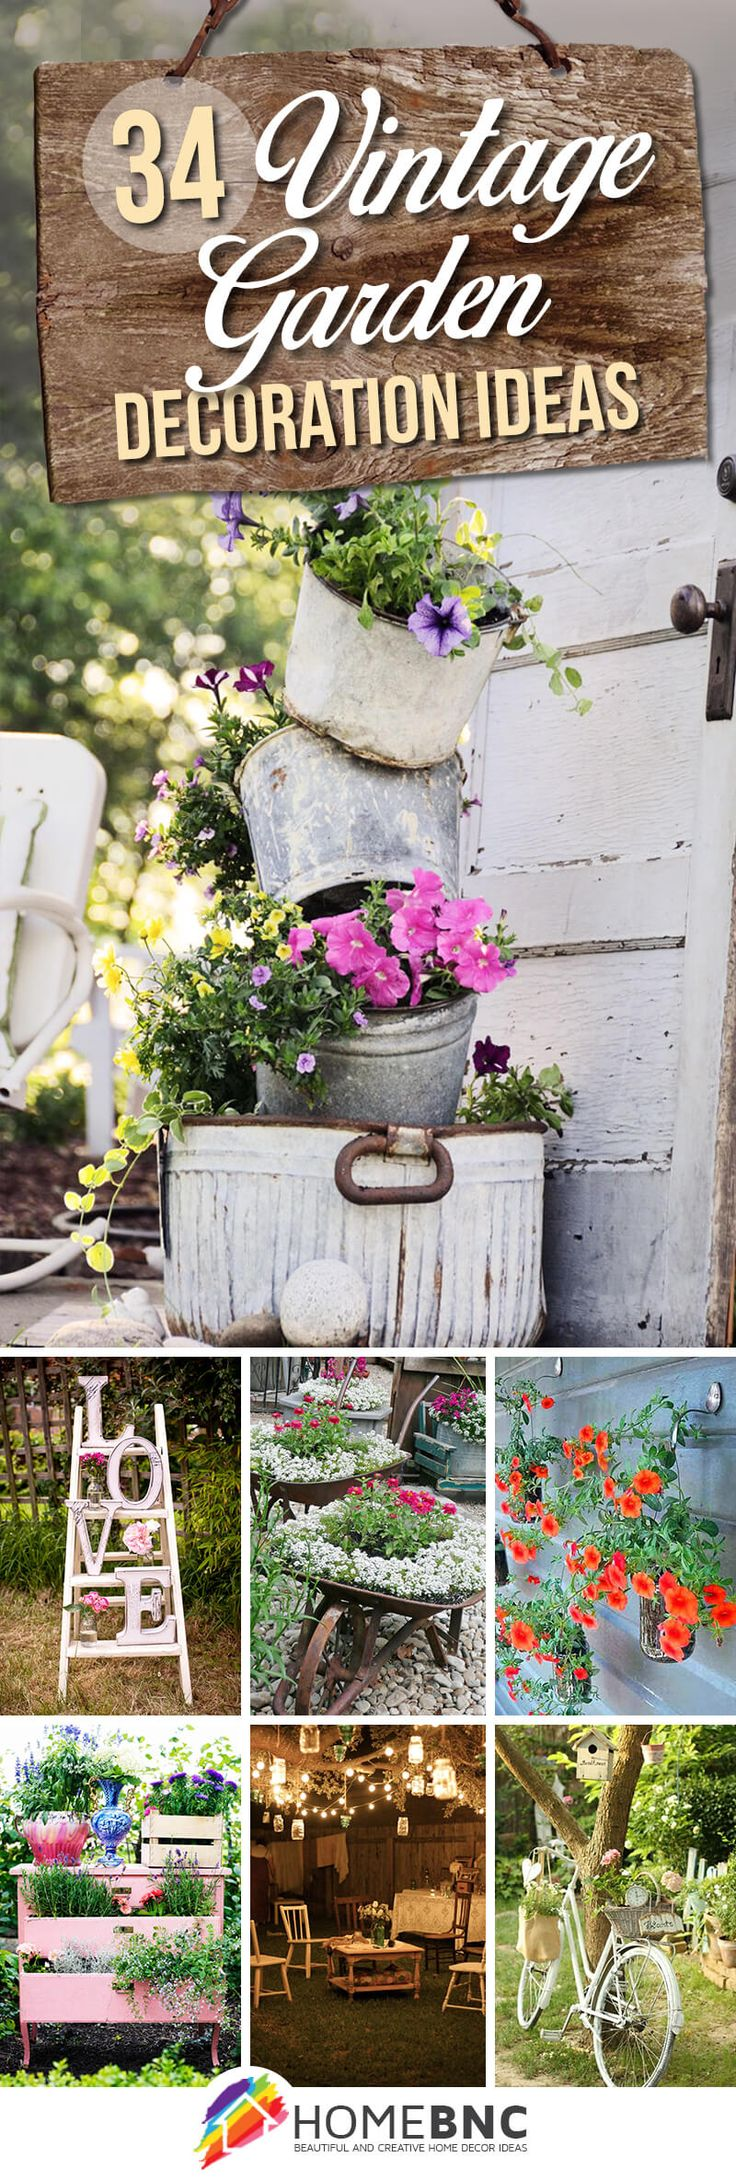 25 best ideas about vintage garden decor on pinterest rustic garden decor - Pinterest deco vintage ...